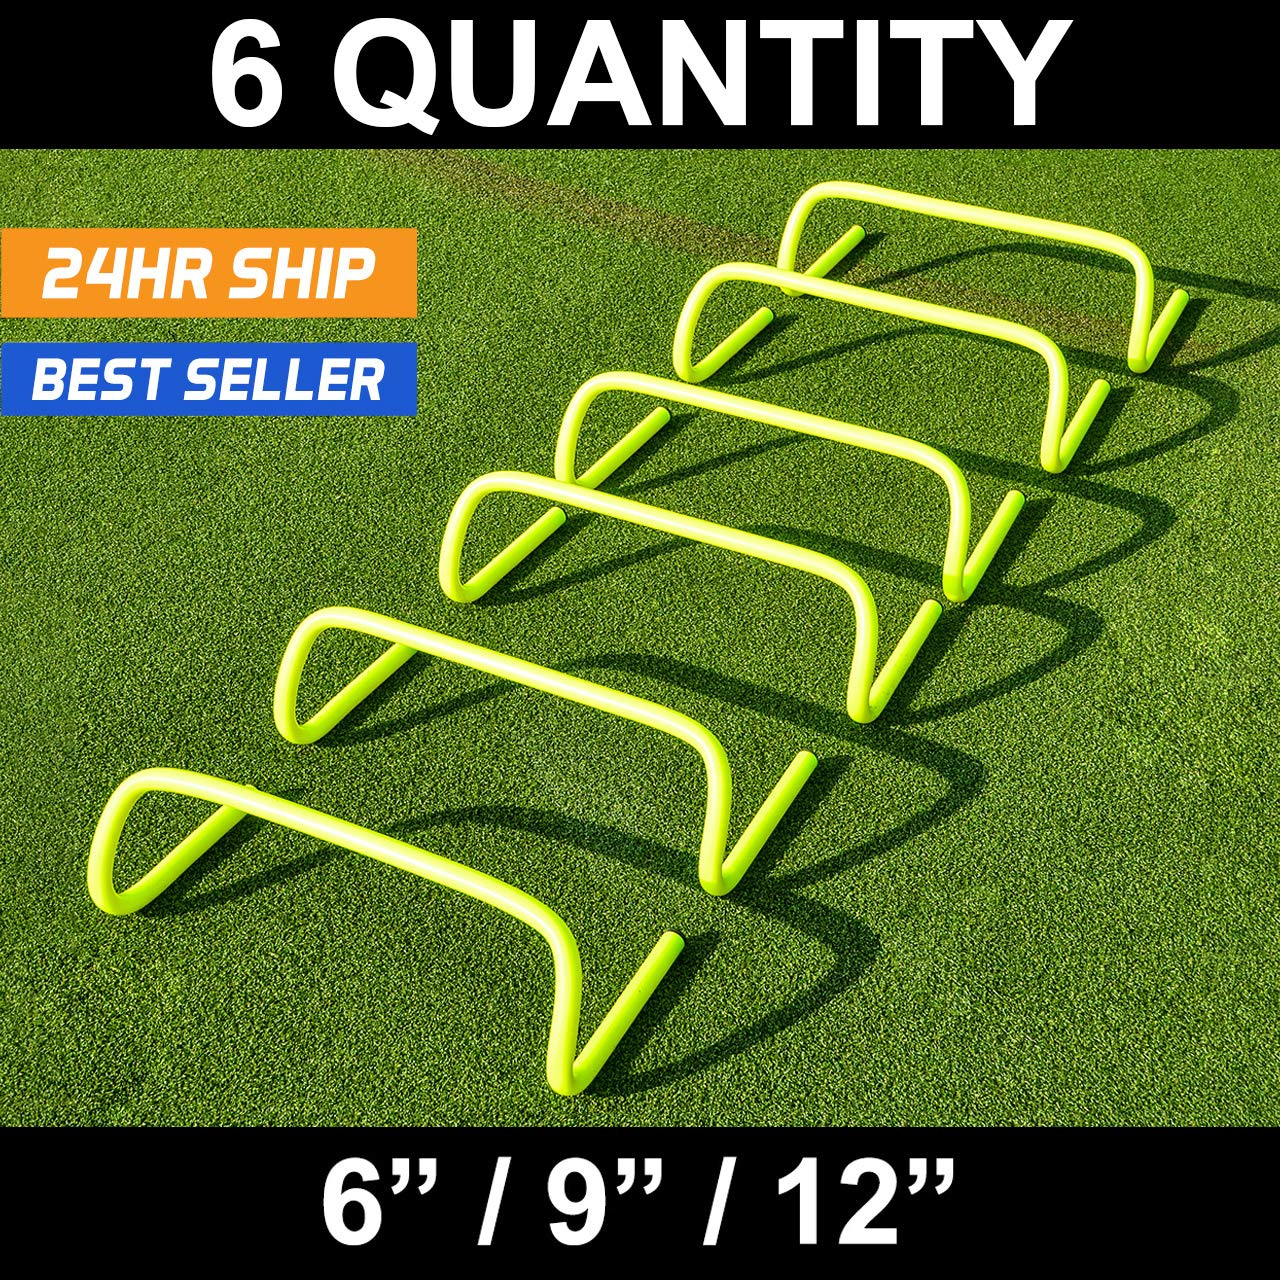 Net World Sports Forza 6''/9''/12'' Speed Hurdles - New & Improved Design for Agility Training [Set of 6]